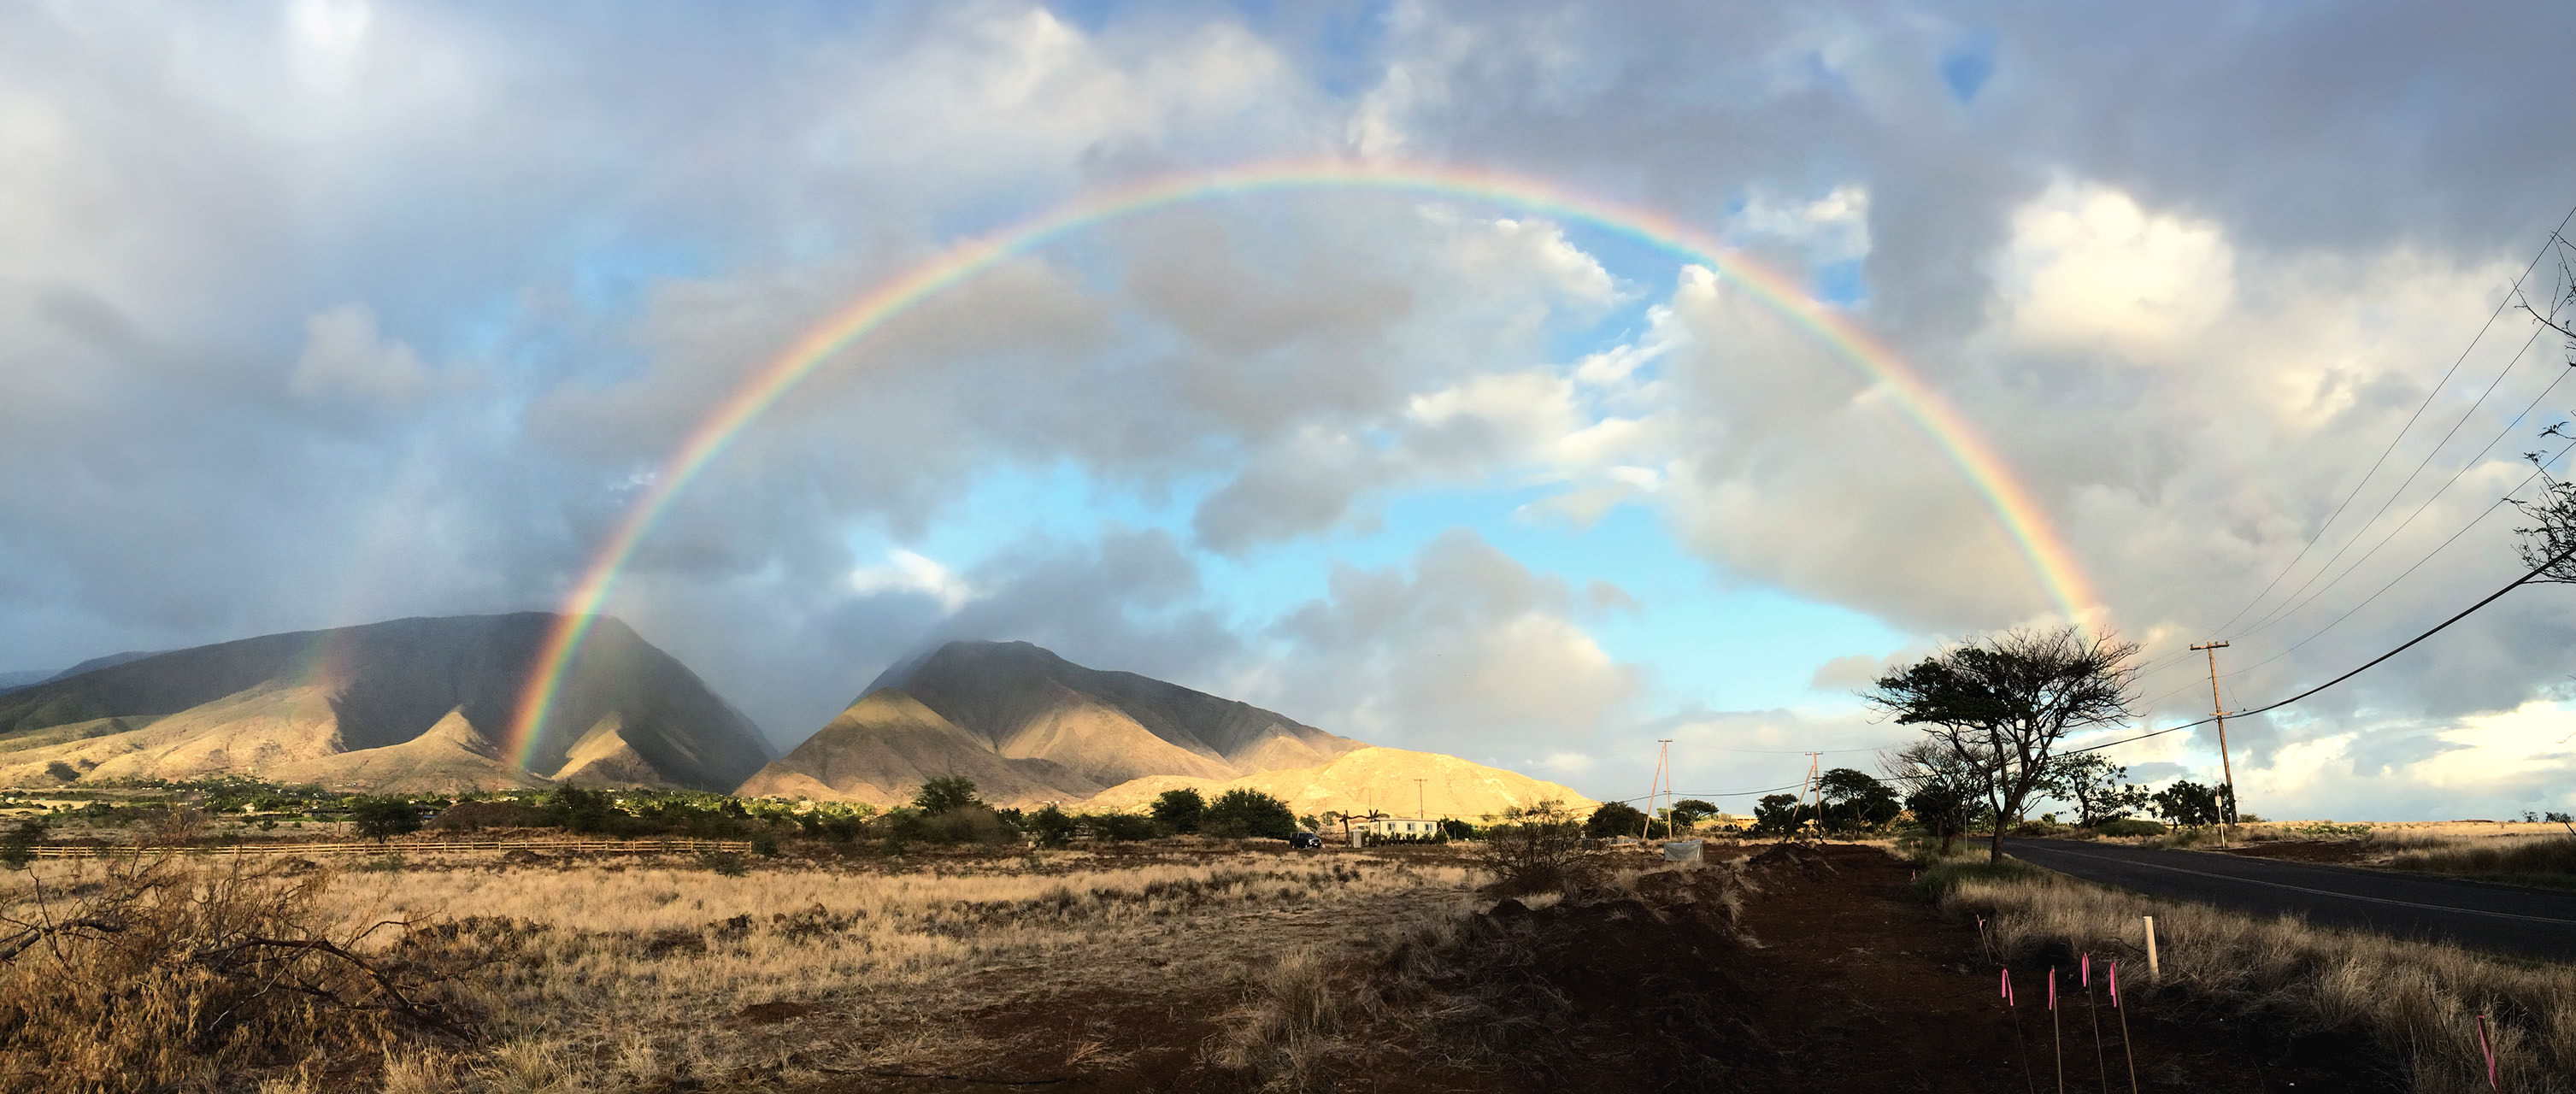 Rainbow at Southern hills of Pu'u Kukui (Maui, HI)